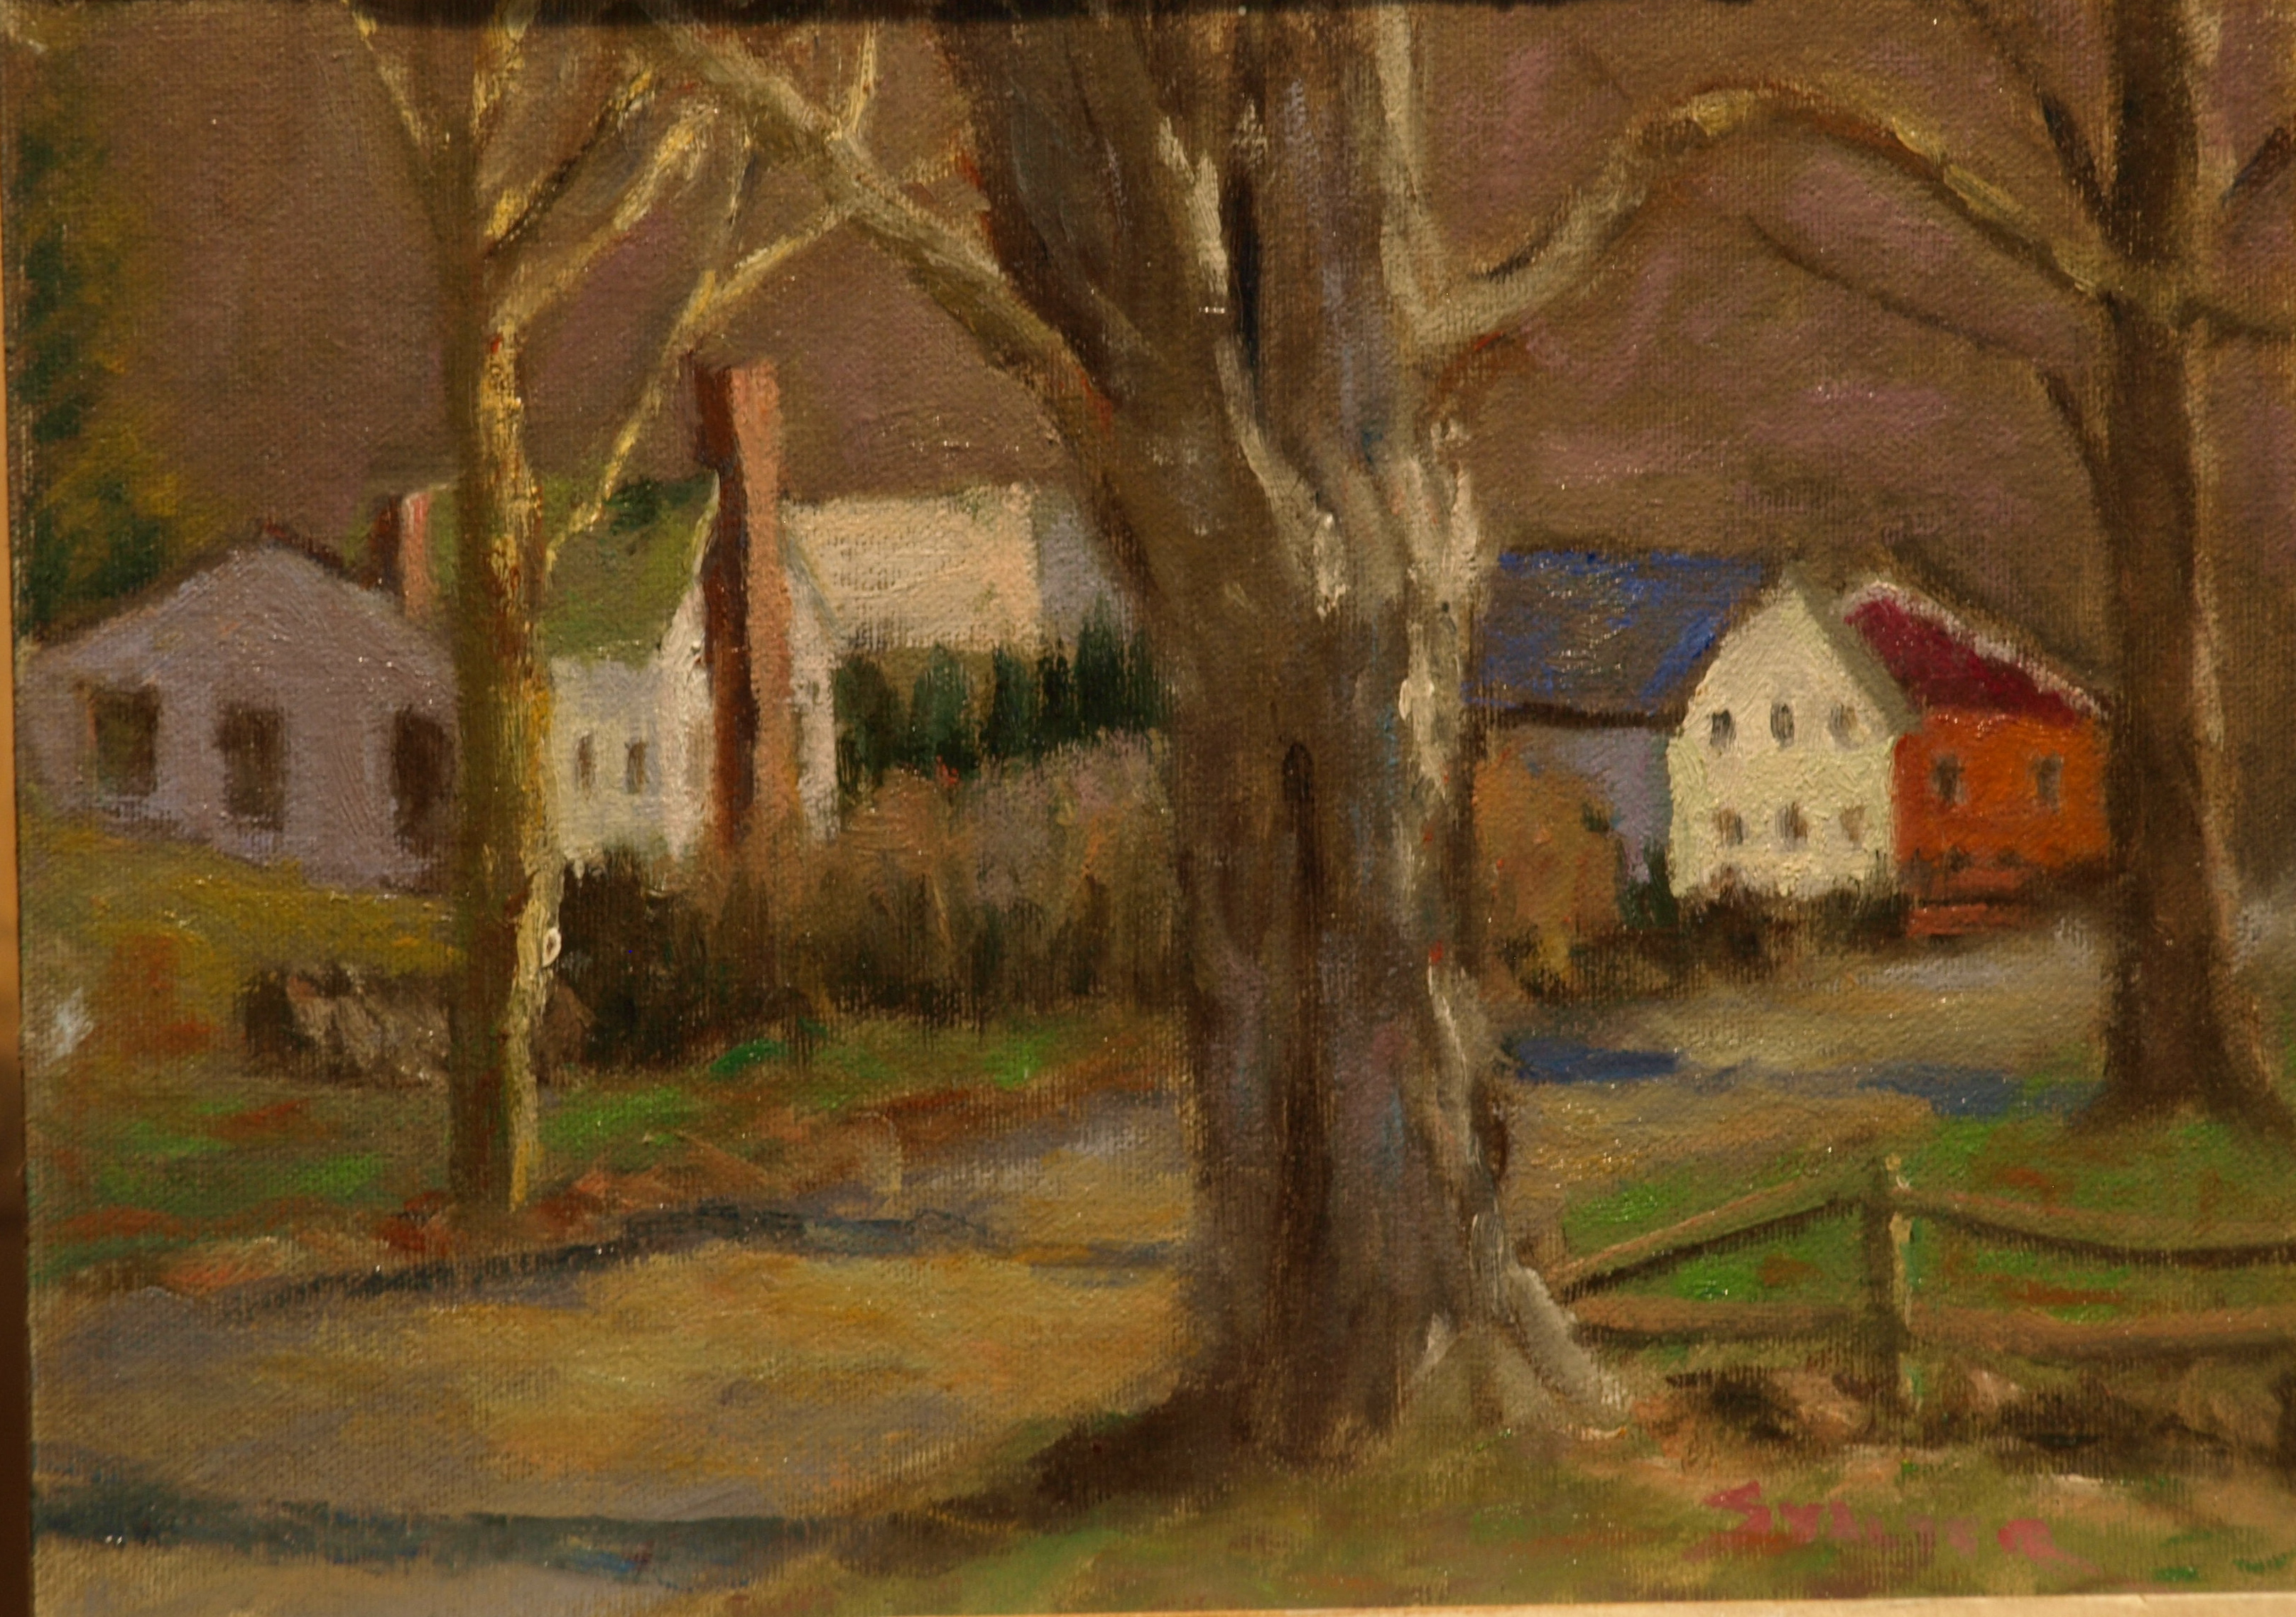 Old Maple, Oil on Canvas on Panel, 8 x 14 Inches, by Richard Stalter, $225